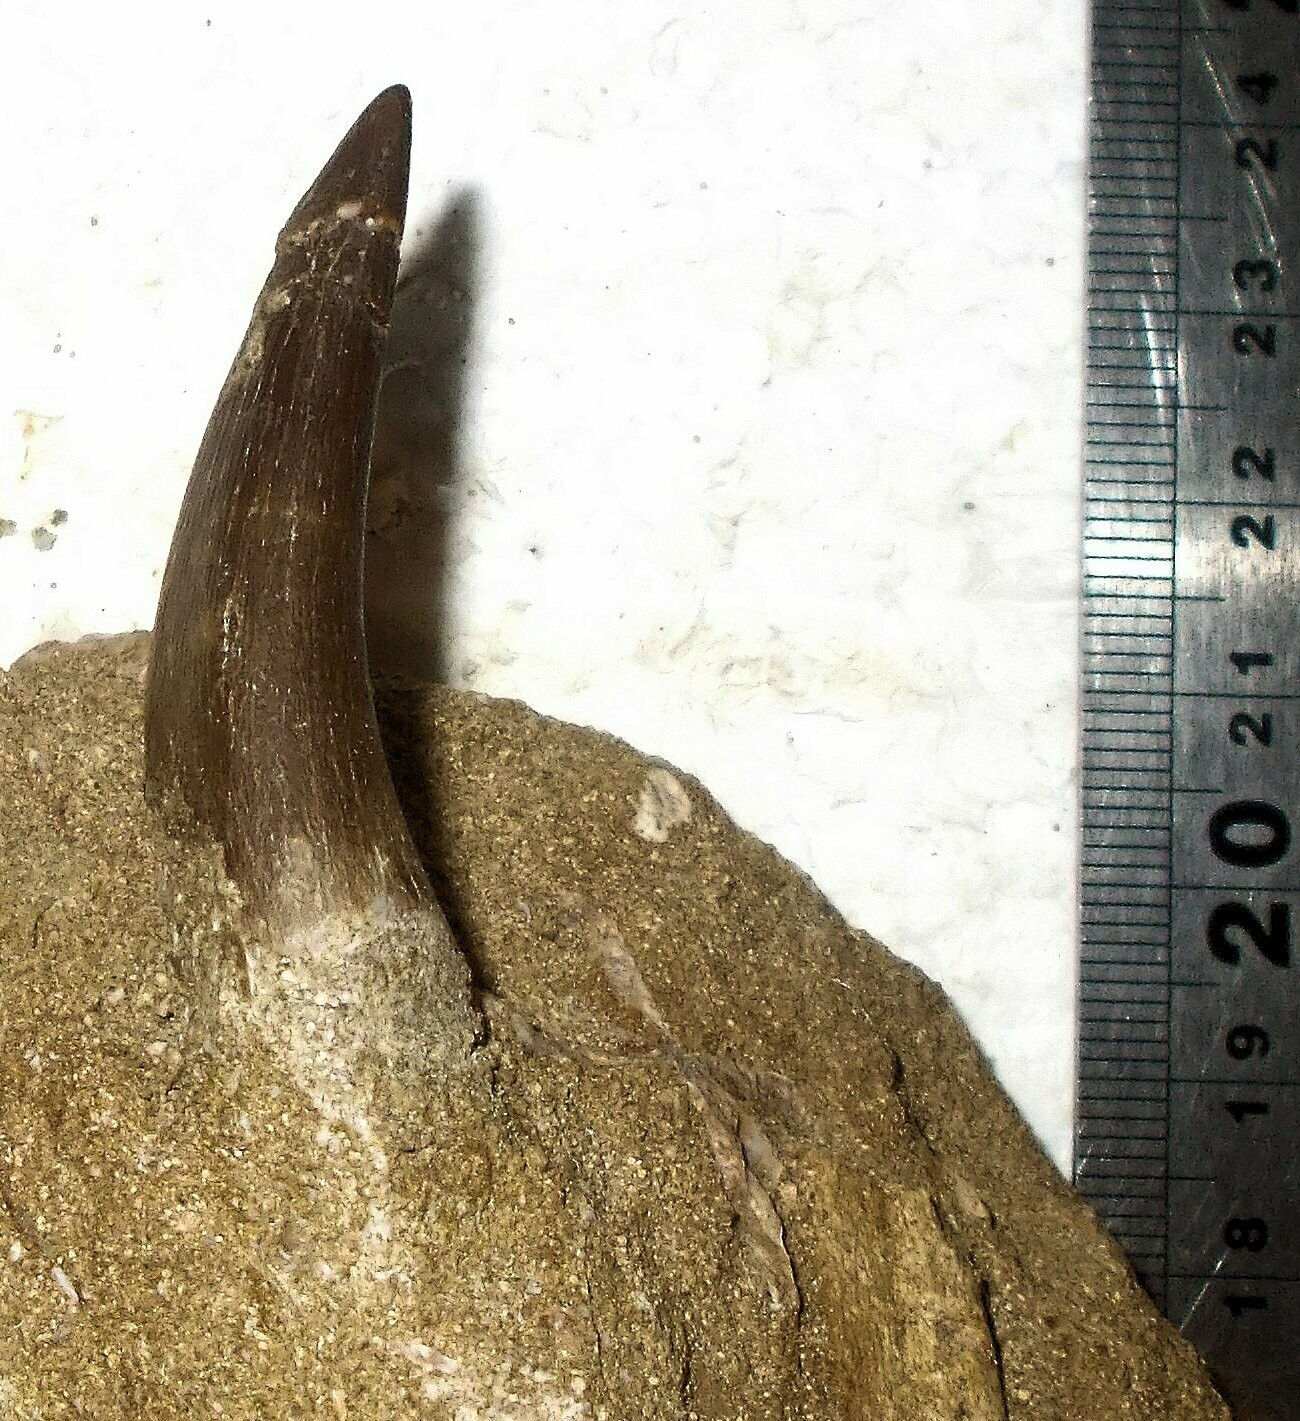 Fine 4-5cm Plesiosaur teeth with the tips intact; Upper Cretaceous, Kem Kem, Morocco